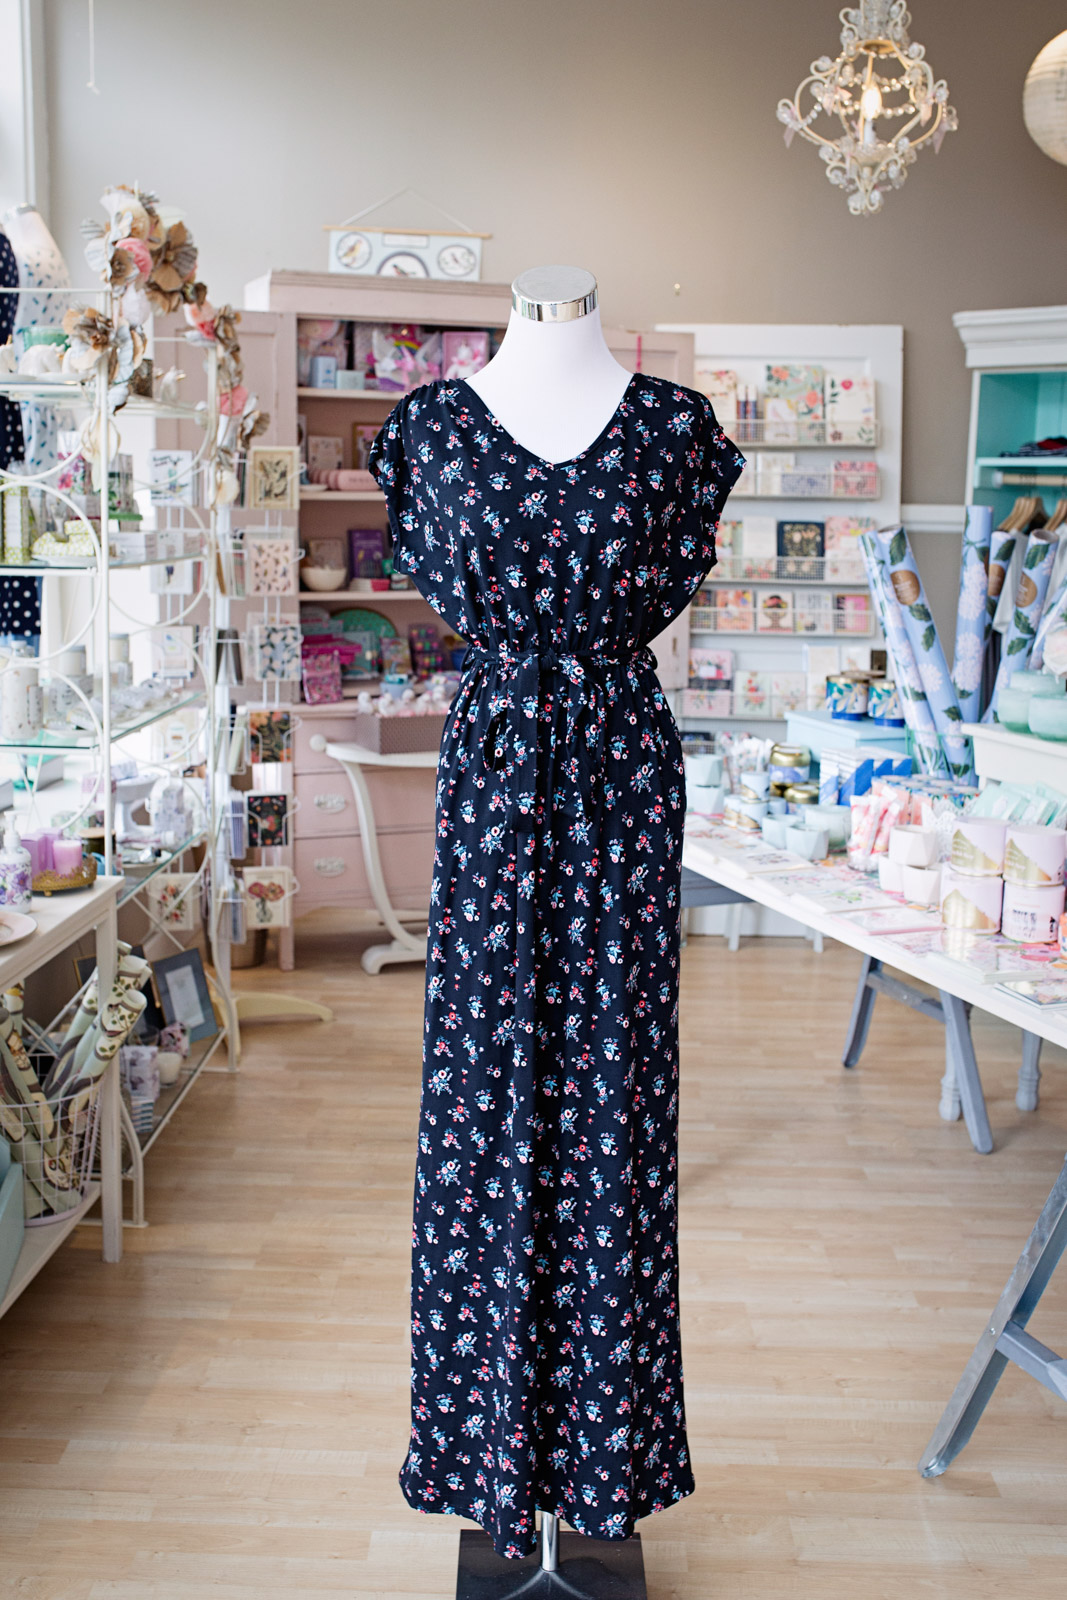 Meadow boutique seattle retail clothing store Yuliya Rae photography branding services-40.jpg